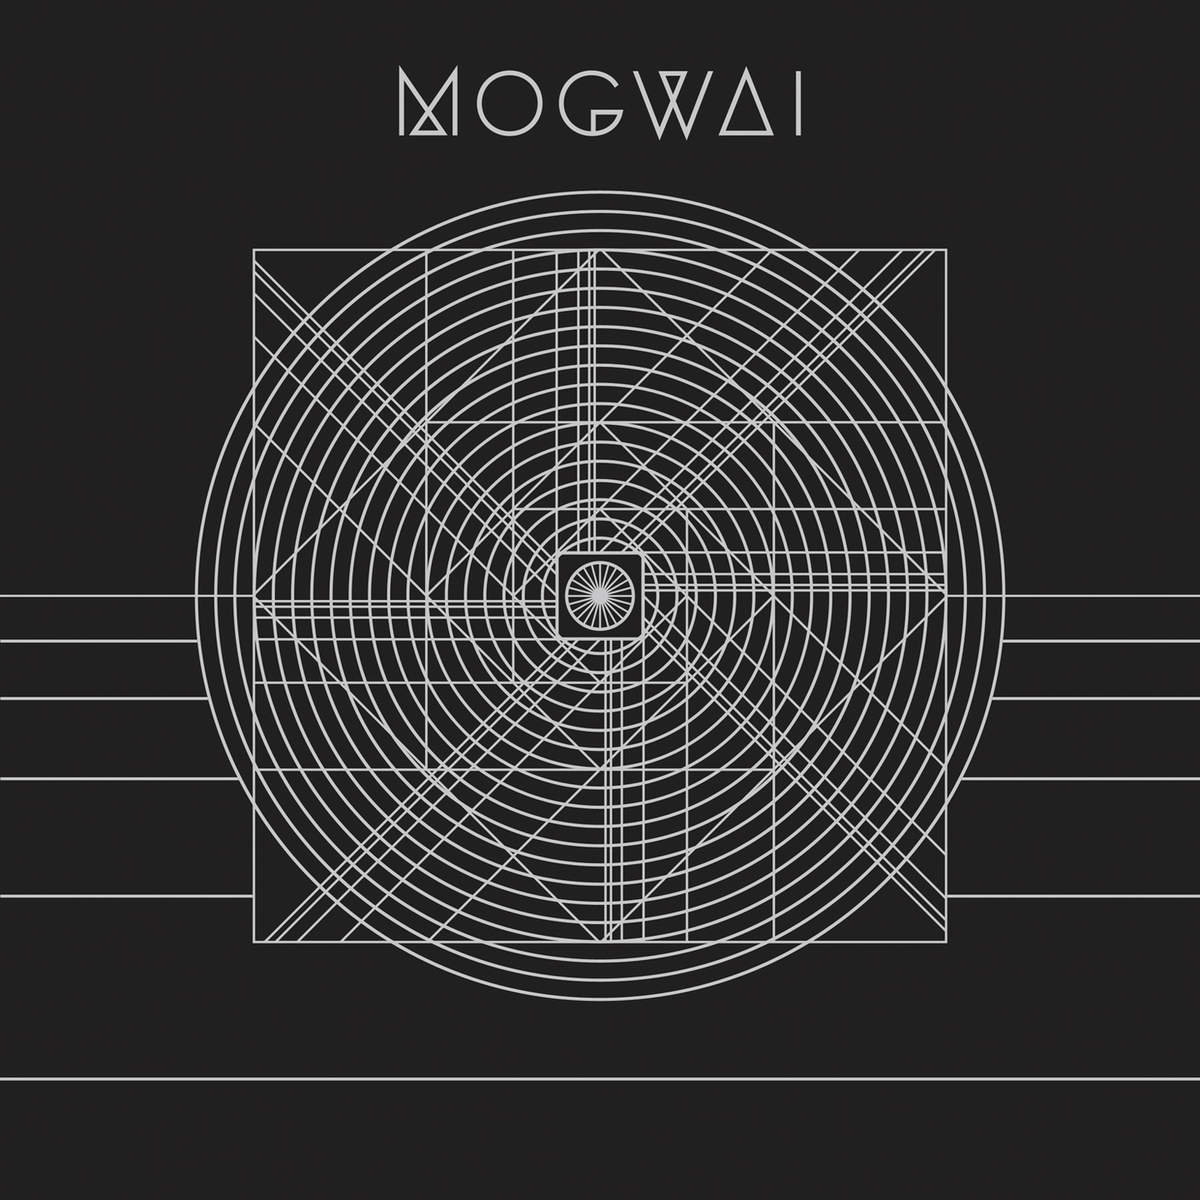 Mogwai – Music Industry 3. Fitness Industry 1.